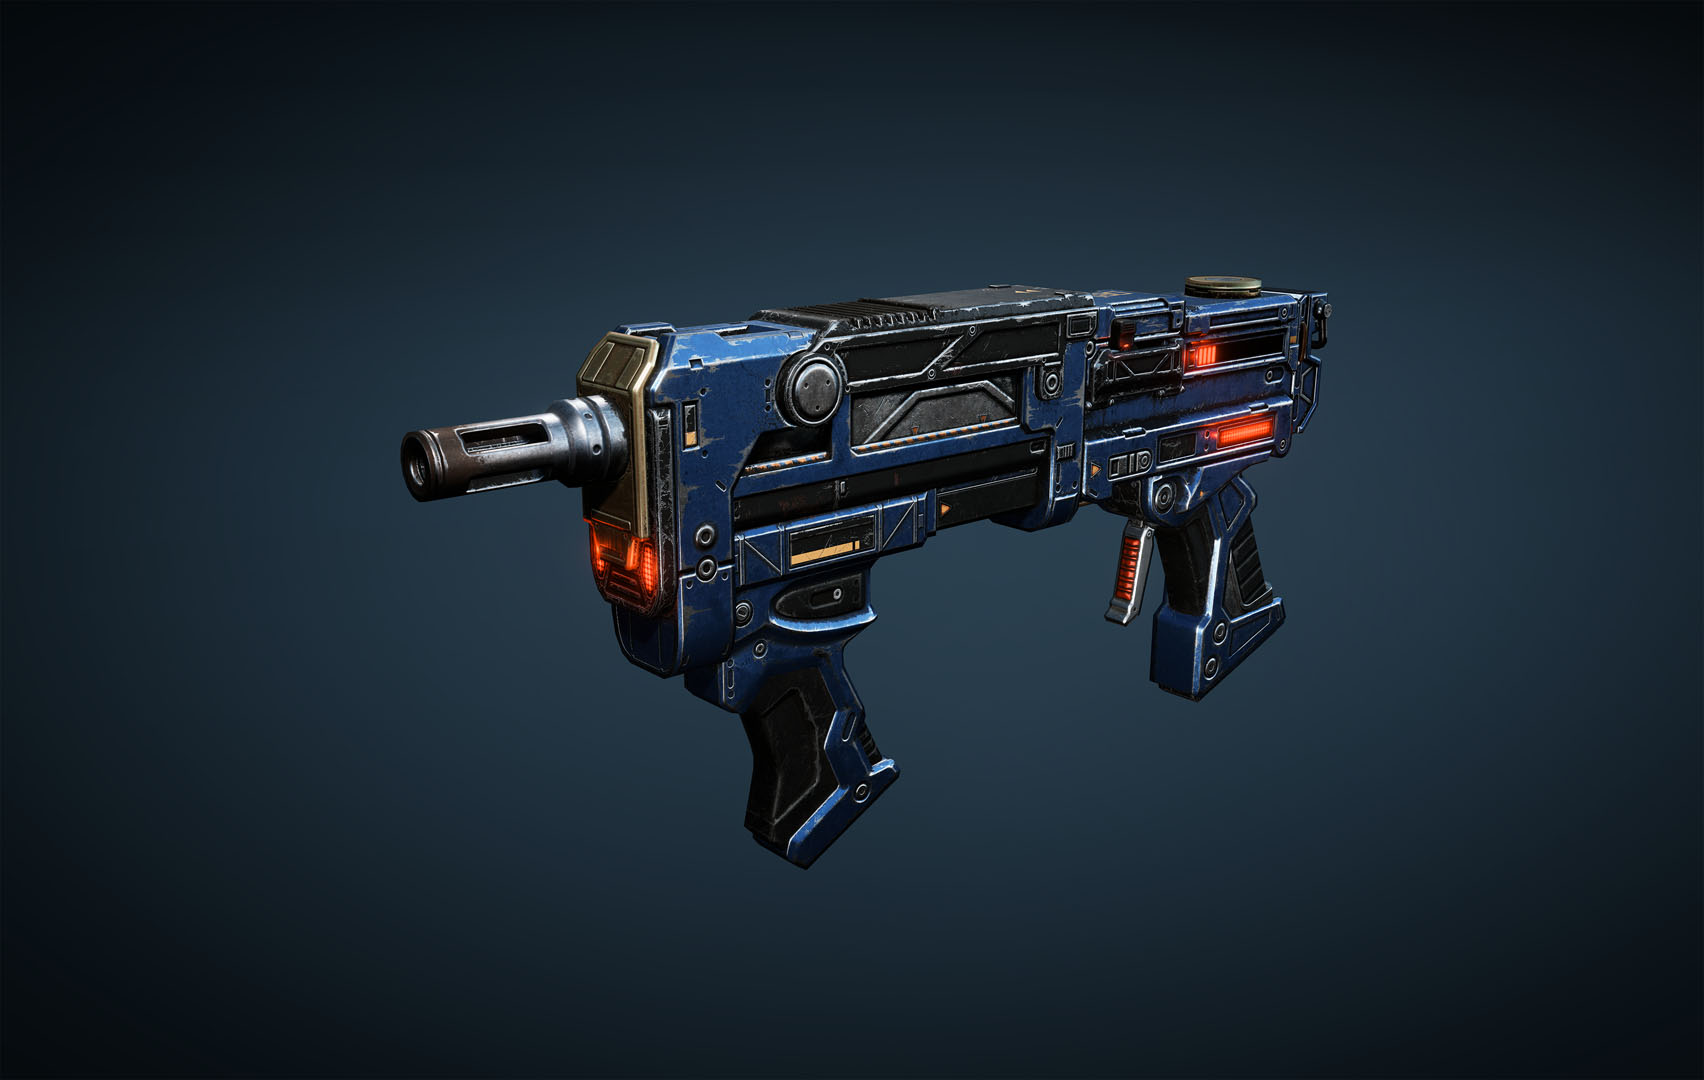 Enforcer: weapon is a minigun type with forward and back handles